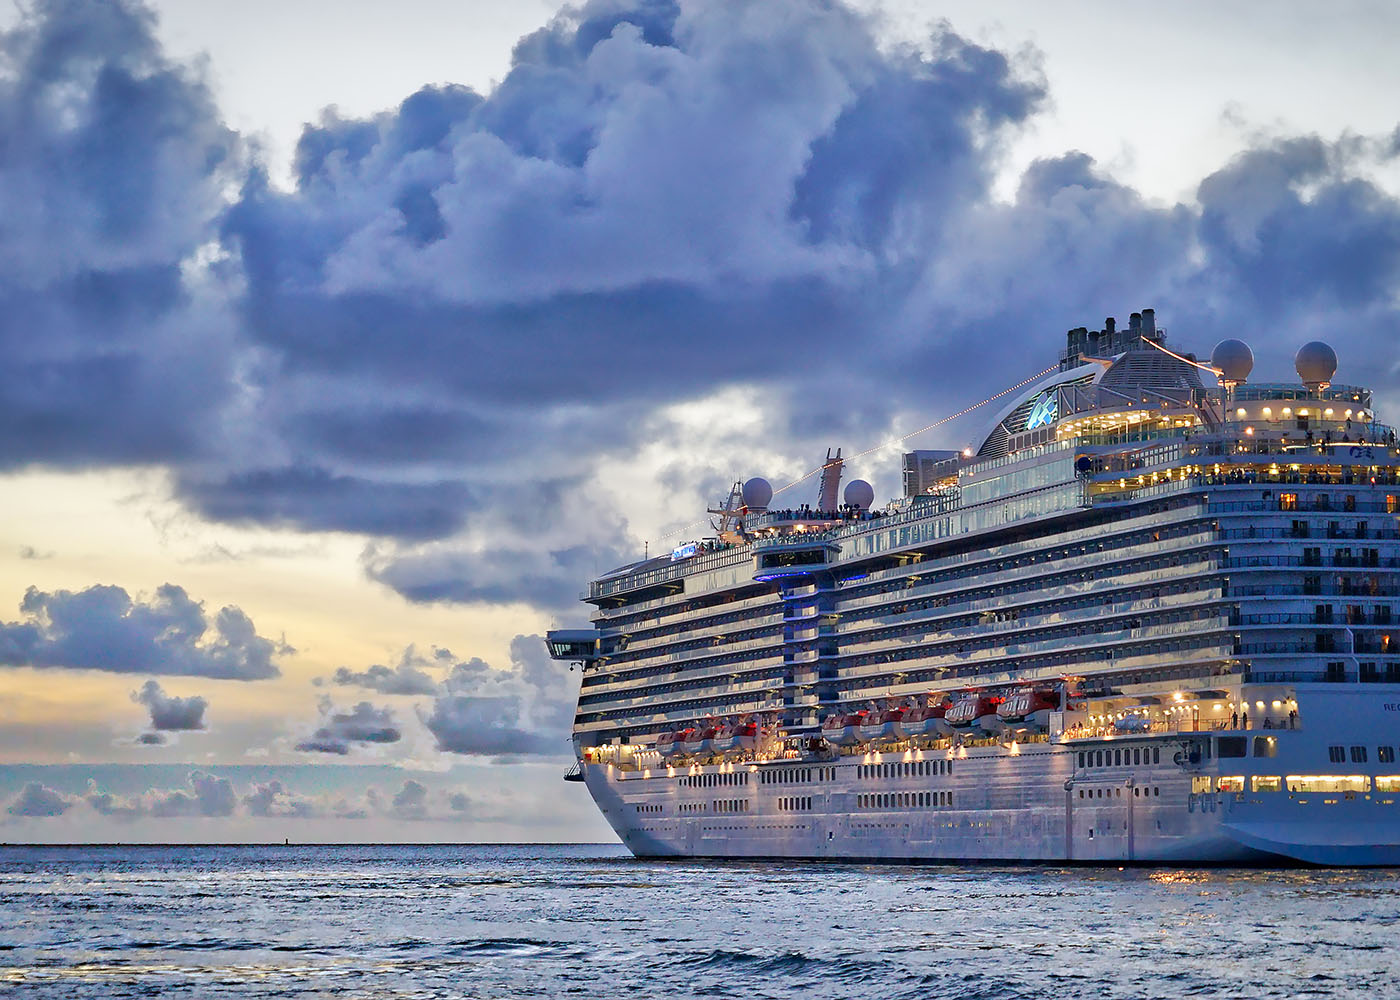 Dreaming of a Cruise Ship Retirement? 5 Tips to Prep for Your Voyage Abroad